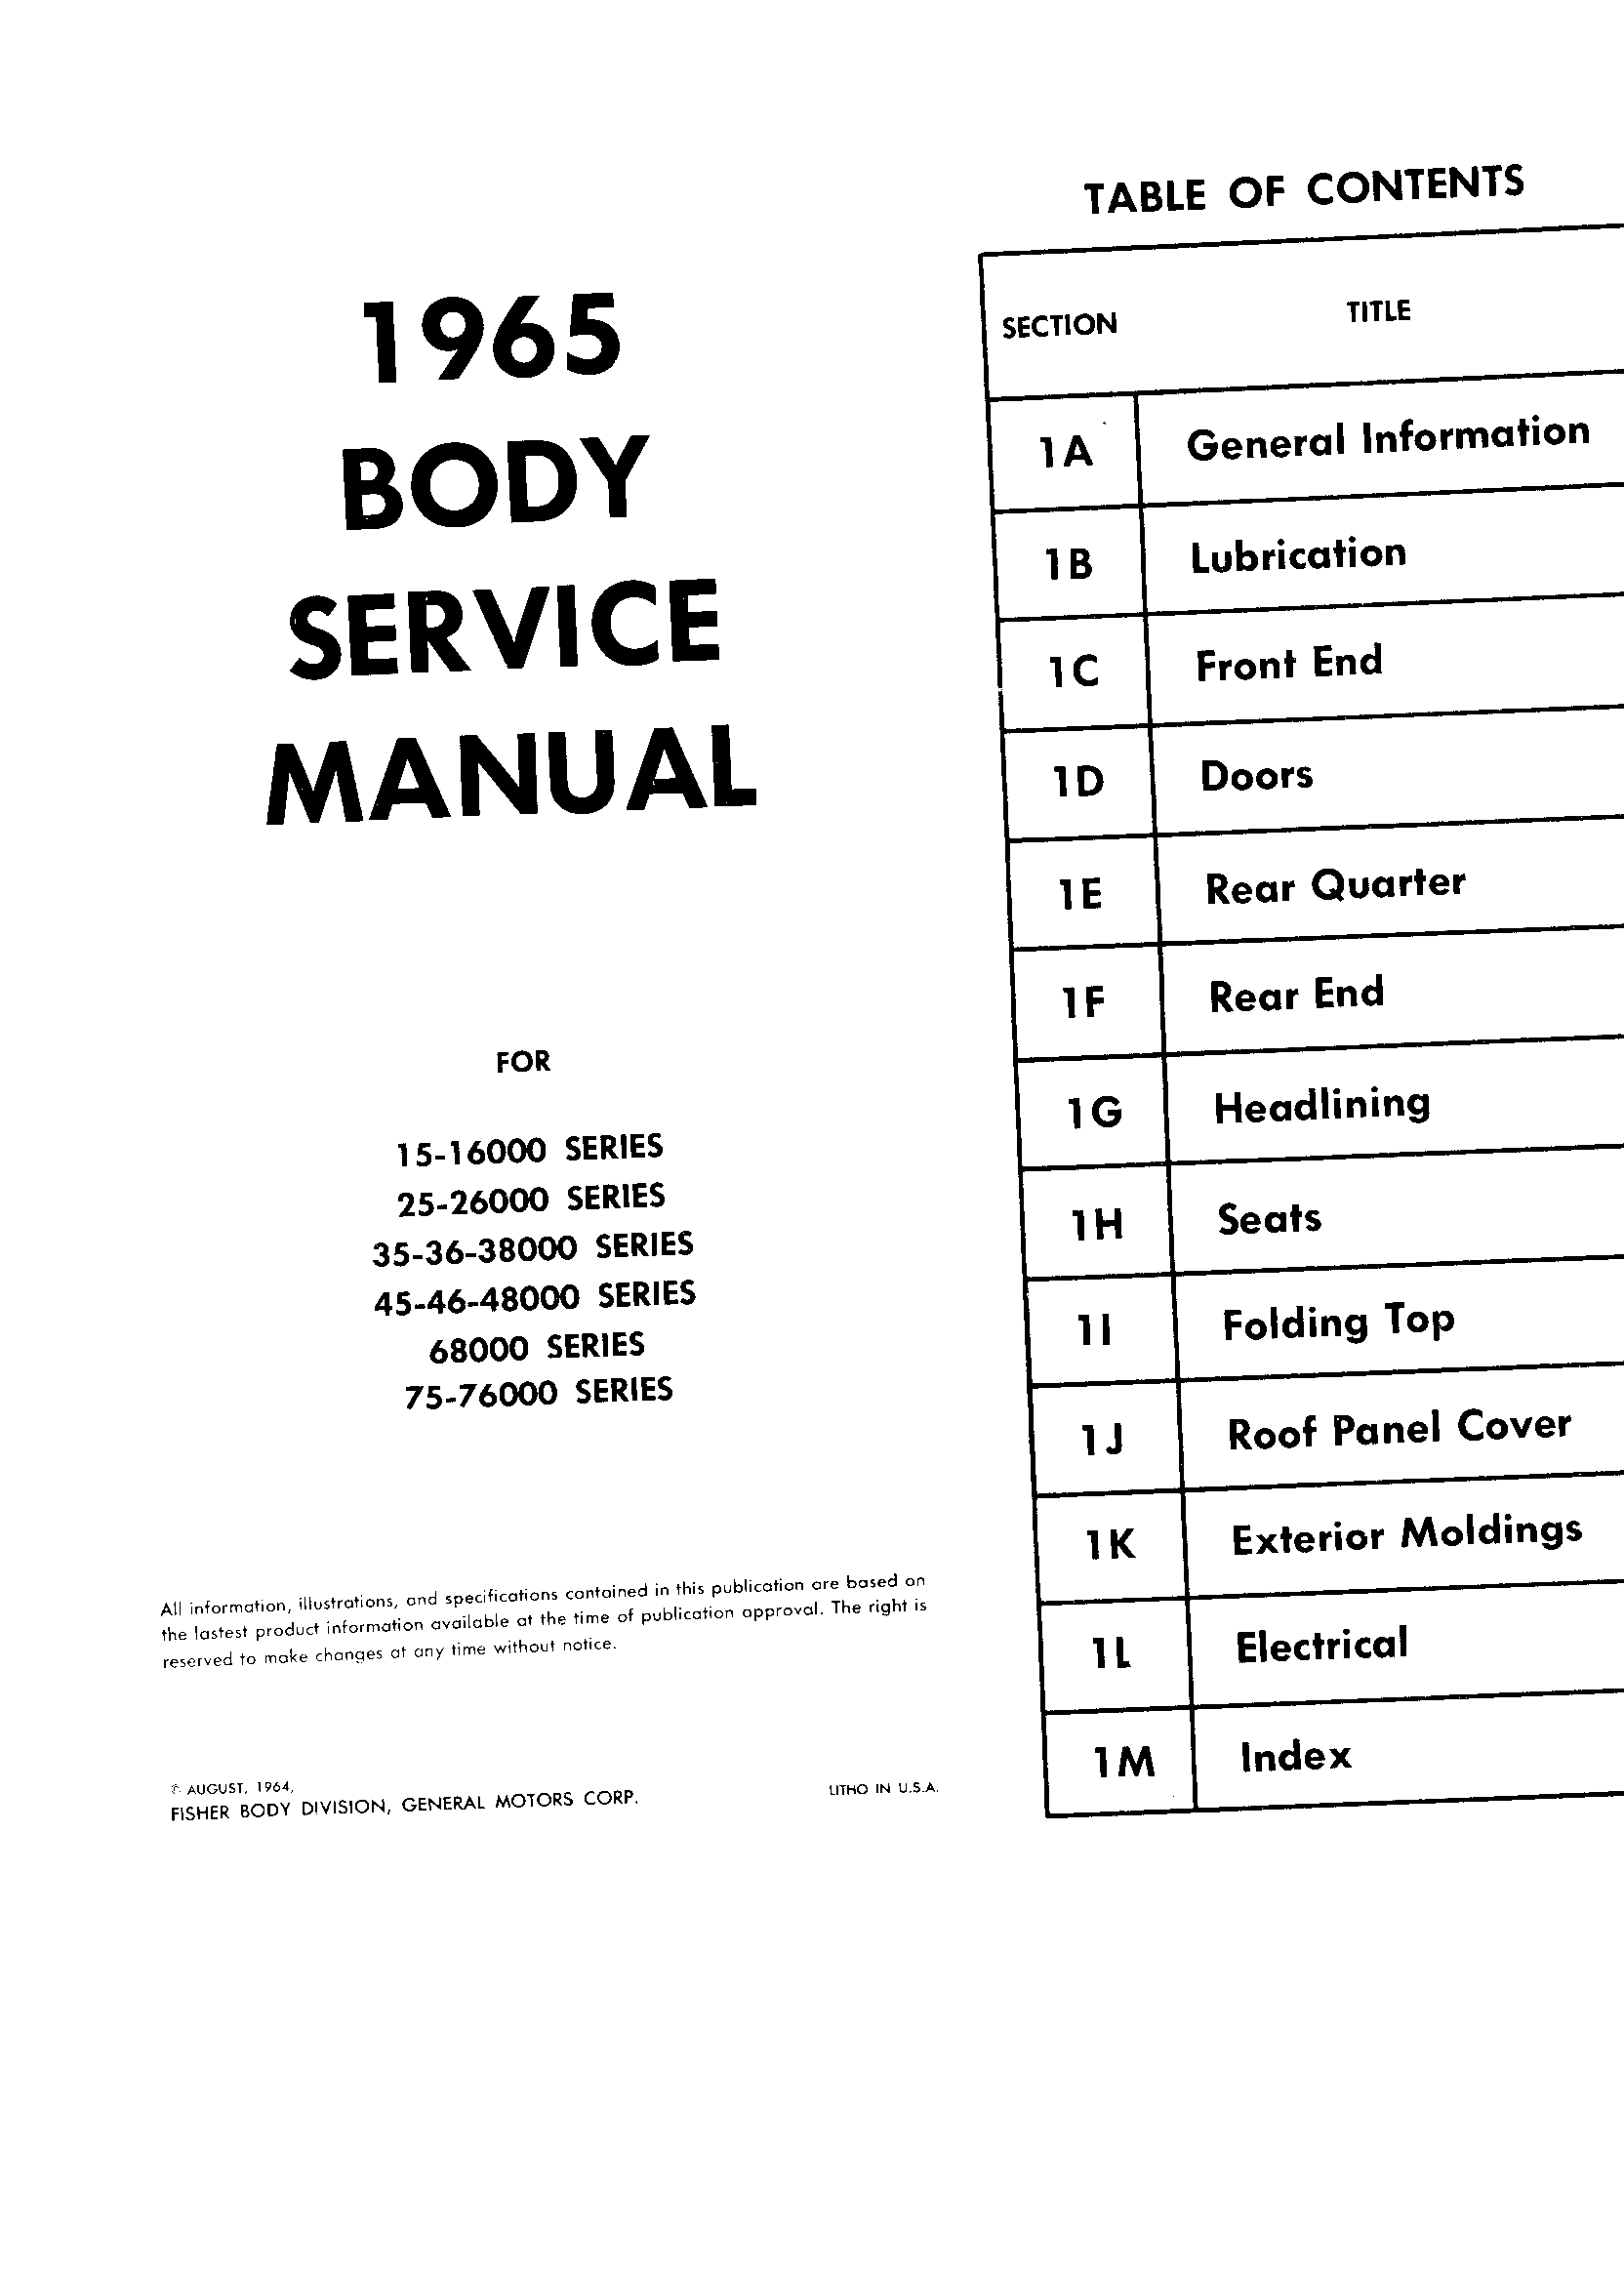 Body Service Manual August 1964